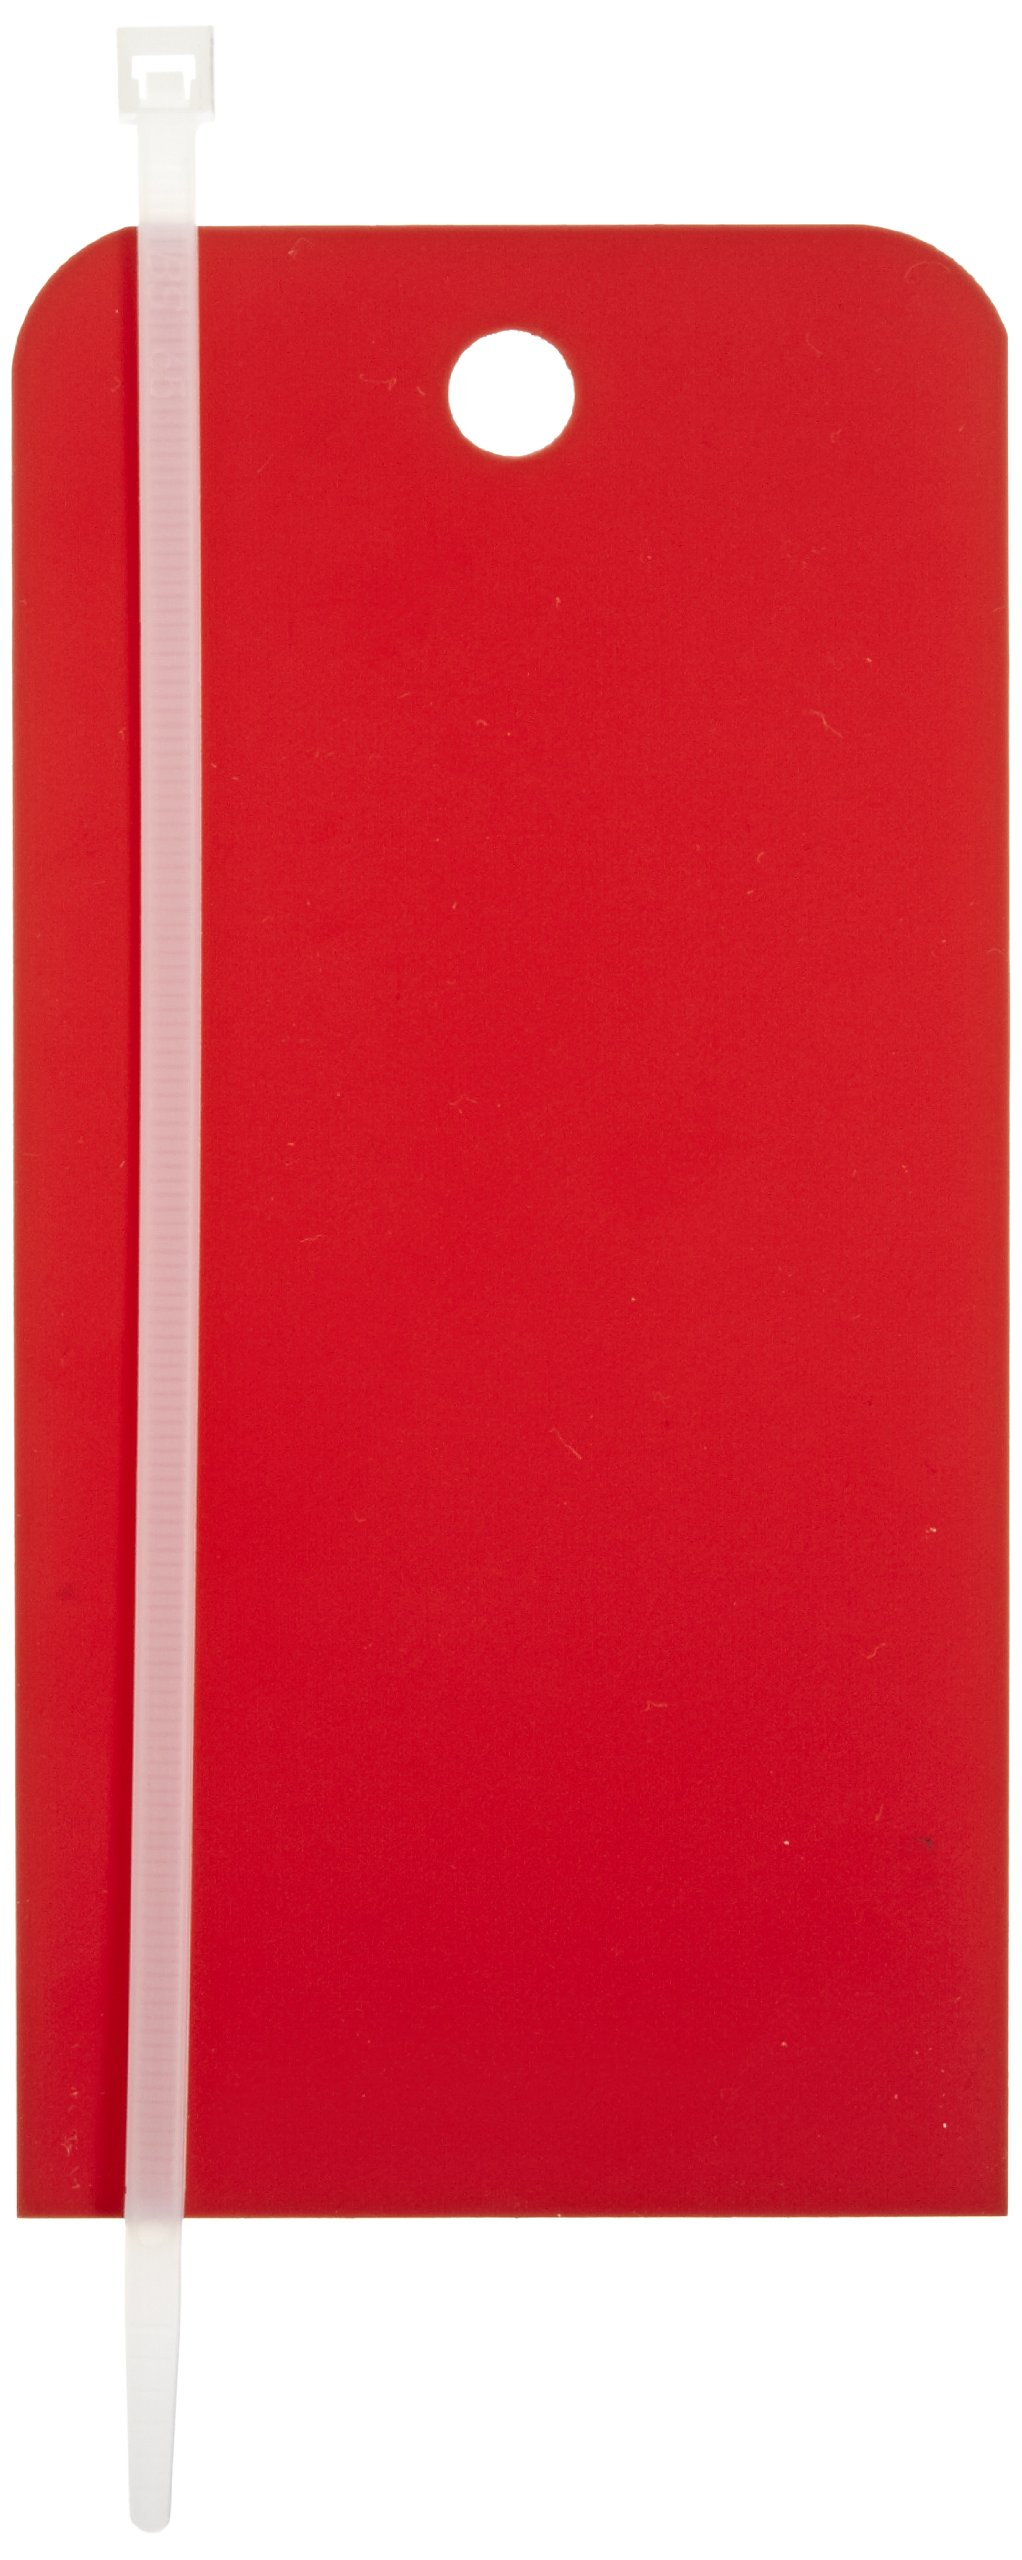 NMC RPT157 Blank Accident Prevention Tag, 3'' Width x 6'' Height, Unrippable Vinyl, Red (Pack of 25) by NMC